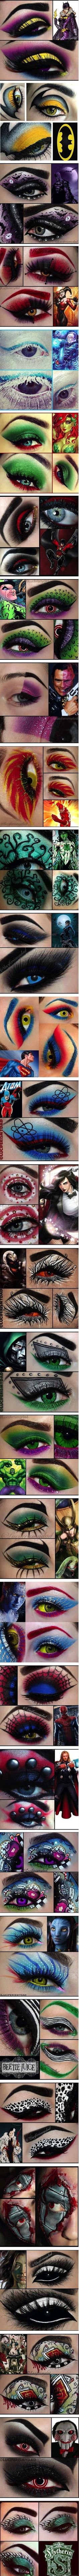 Comic book inspired/cosplay eye makeup. Difficulty level for most of them look way harder than I could do myself